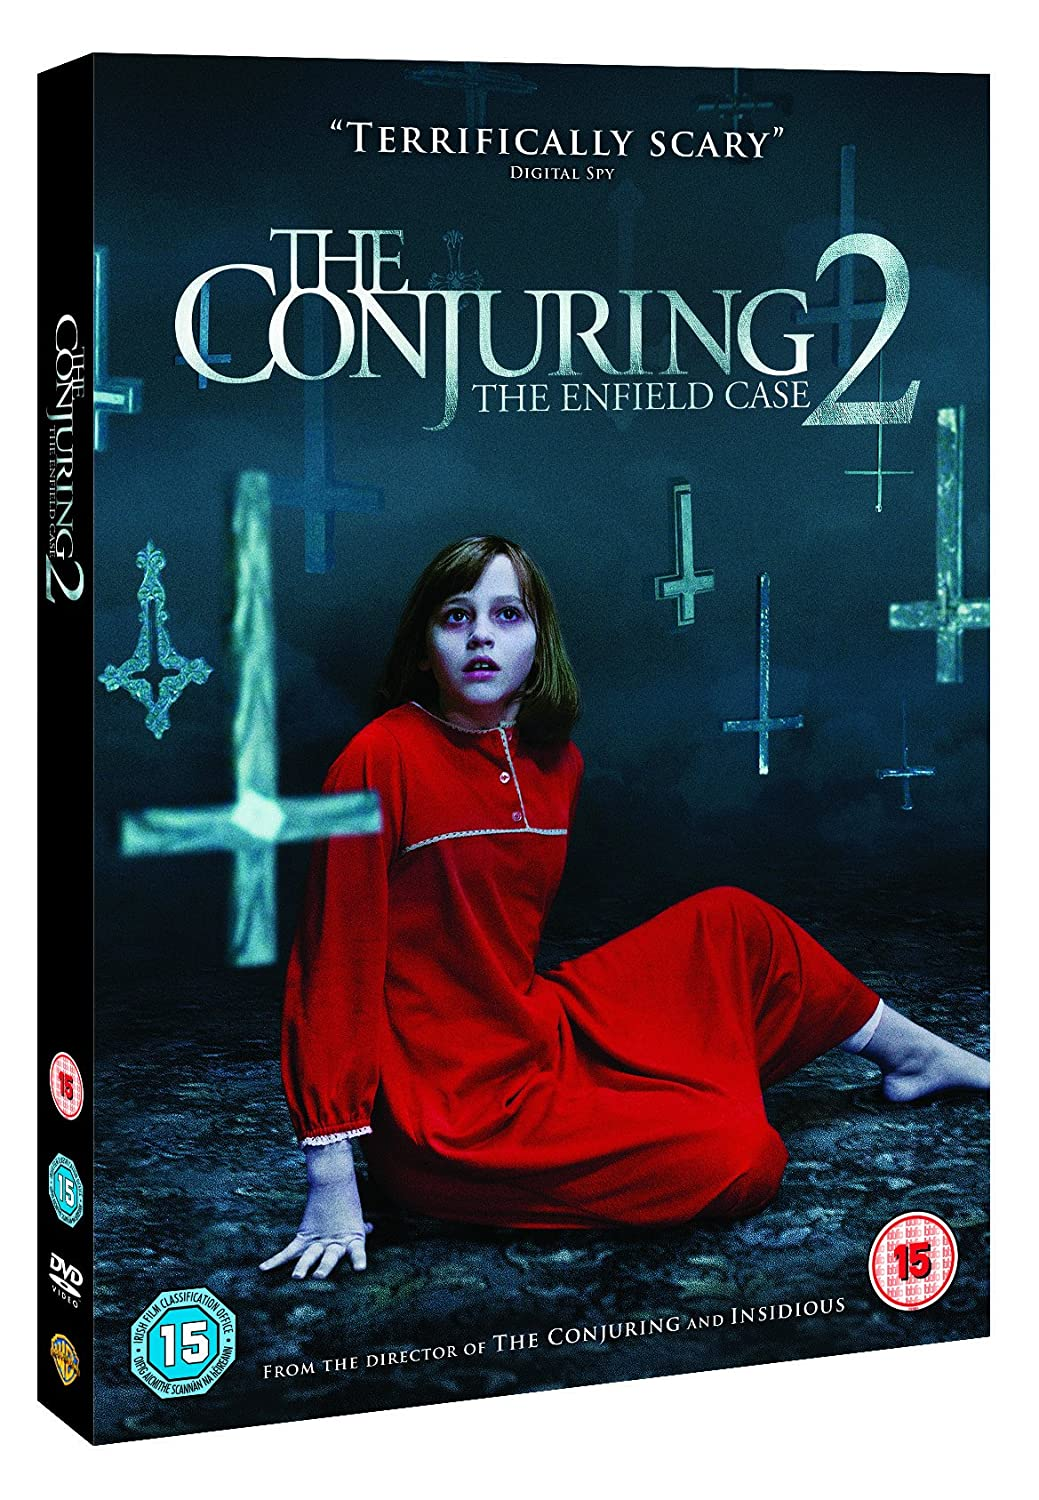 the conjuring full movie download mp4